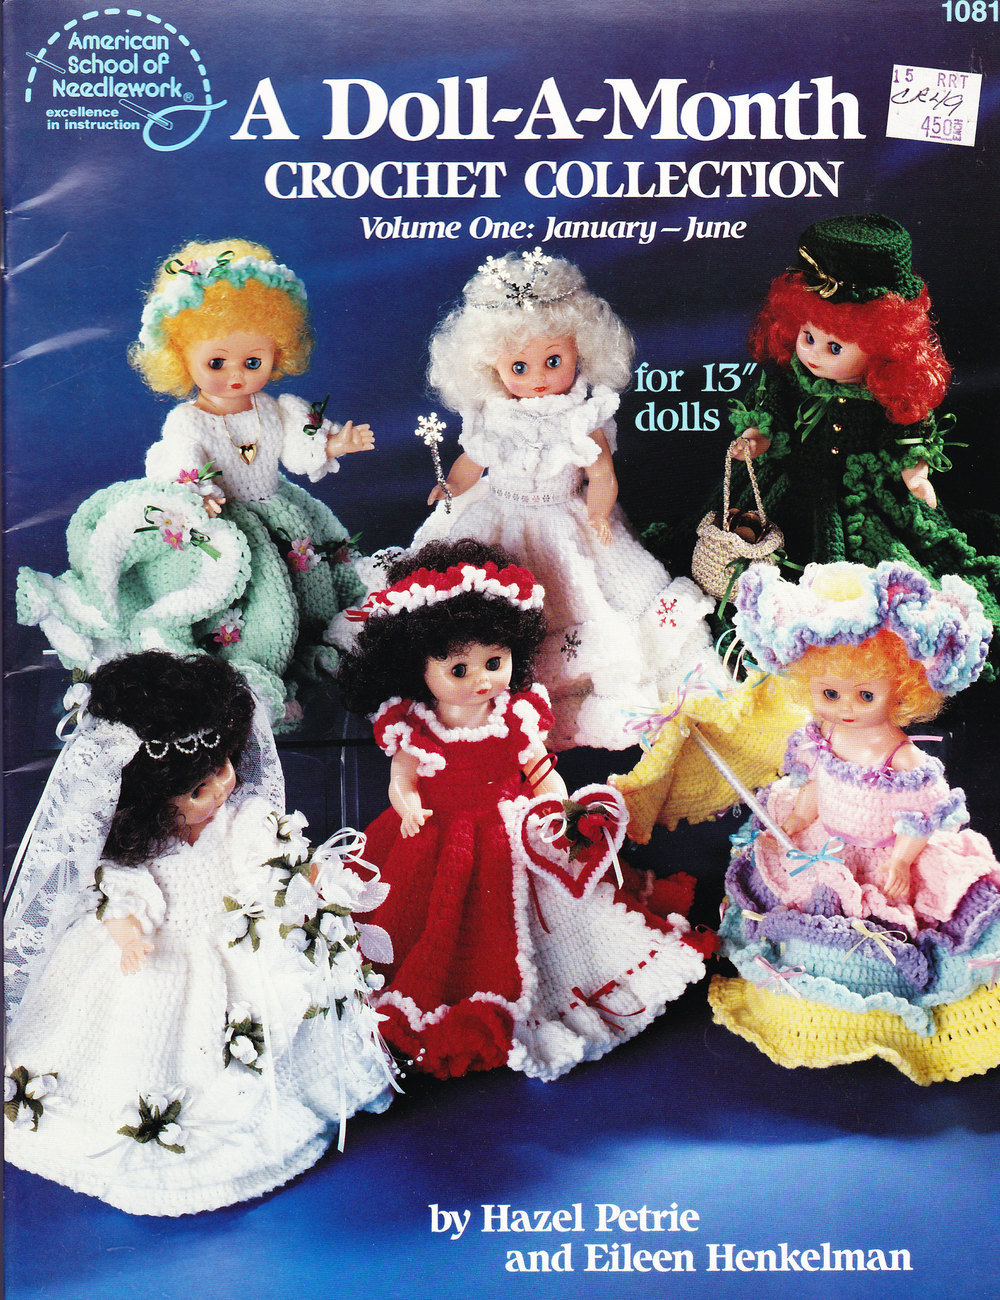 Primary image for DOLL-A-MONTH CROCHET COLLECTION JAN. - JUNE AM. SCHOOL